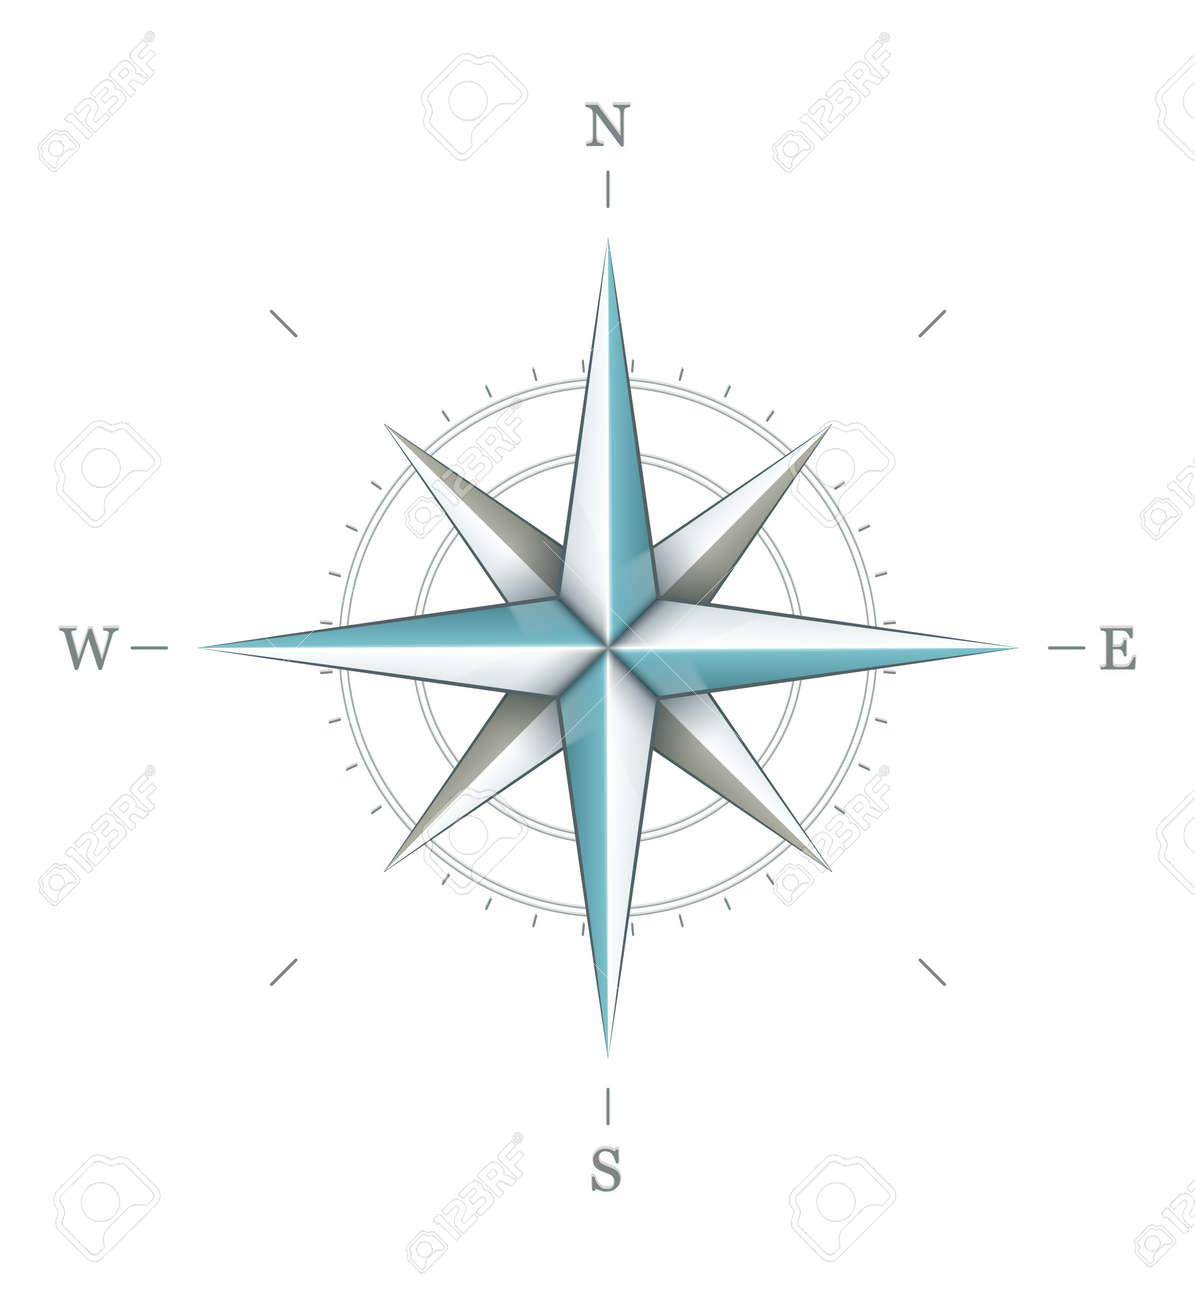 Antique wind rose symbol for navigation isolated on white background. Transparent objects used for shadows and lights drawing. Stock Vector - 12998490